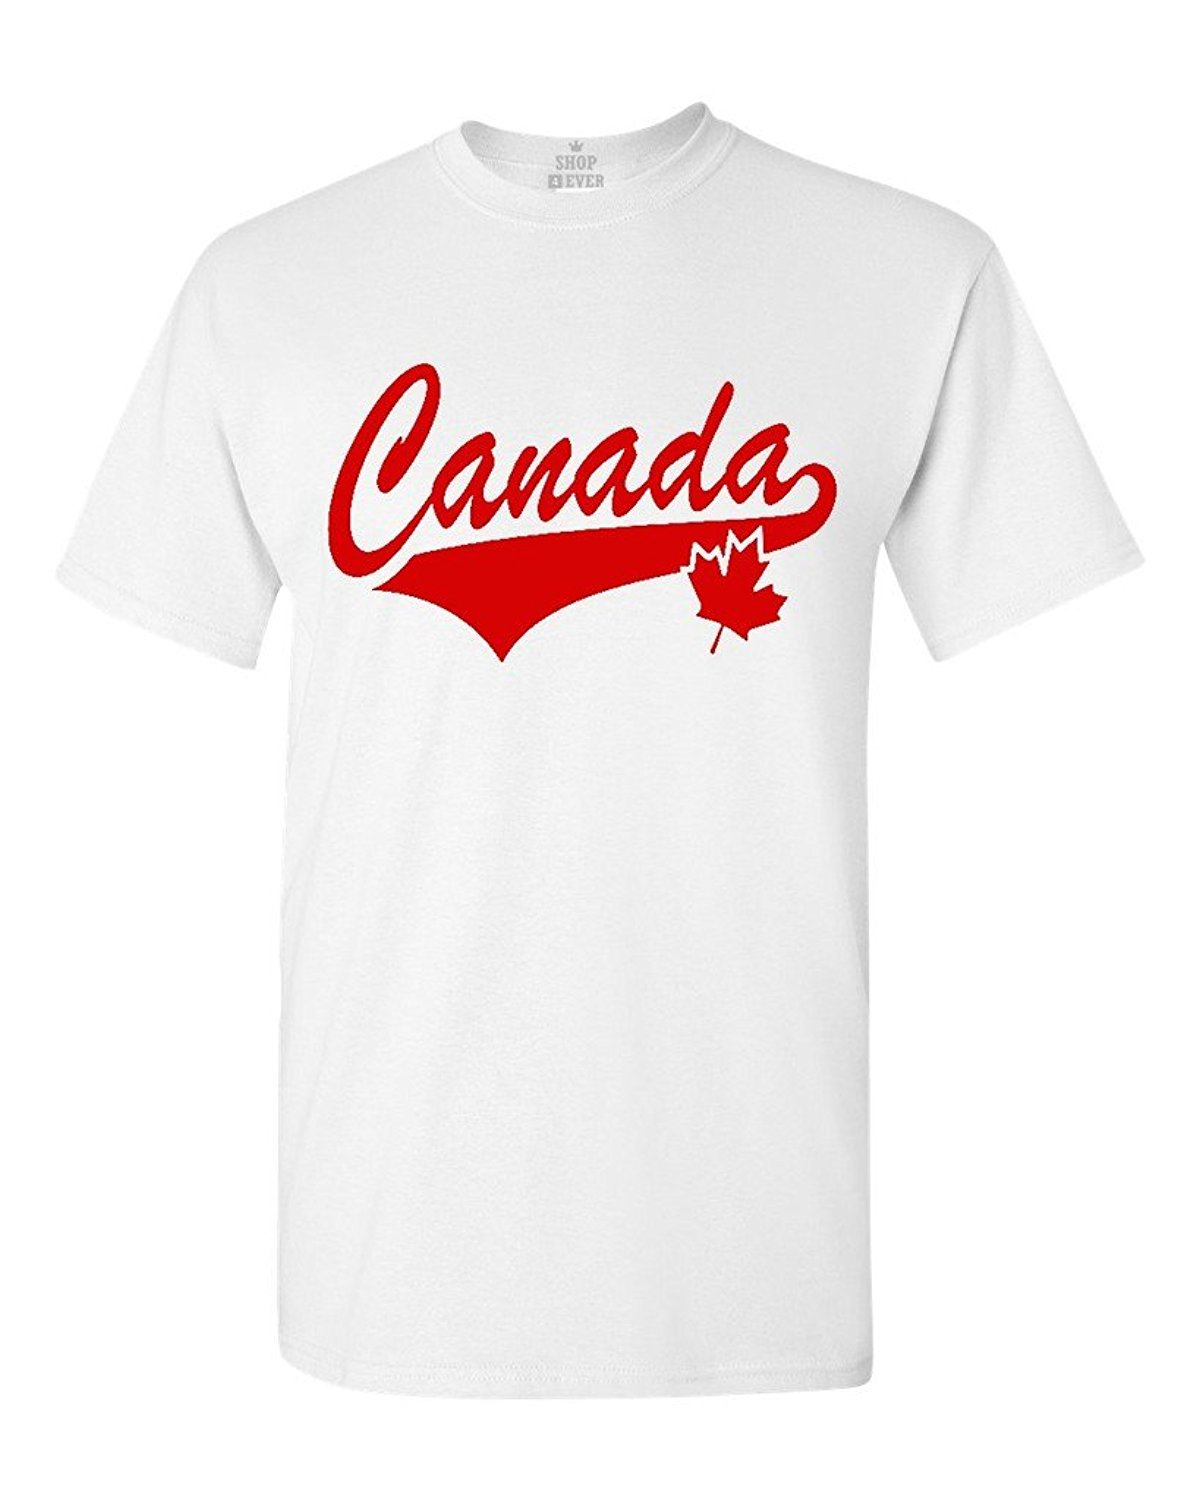 canada feuille t shirt drapeau canadien chemises 100. Black Bedroom Furniture Sets. Home Design Ideas